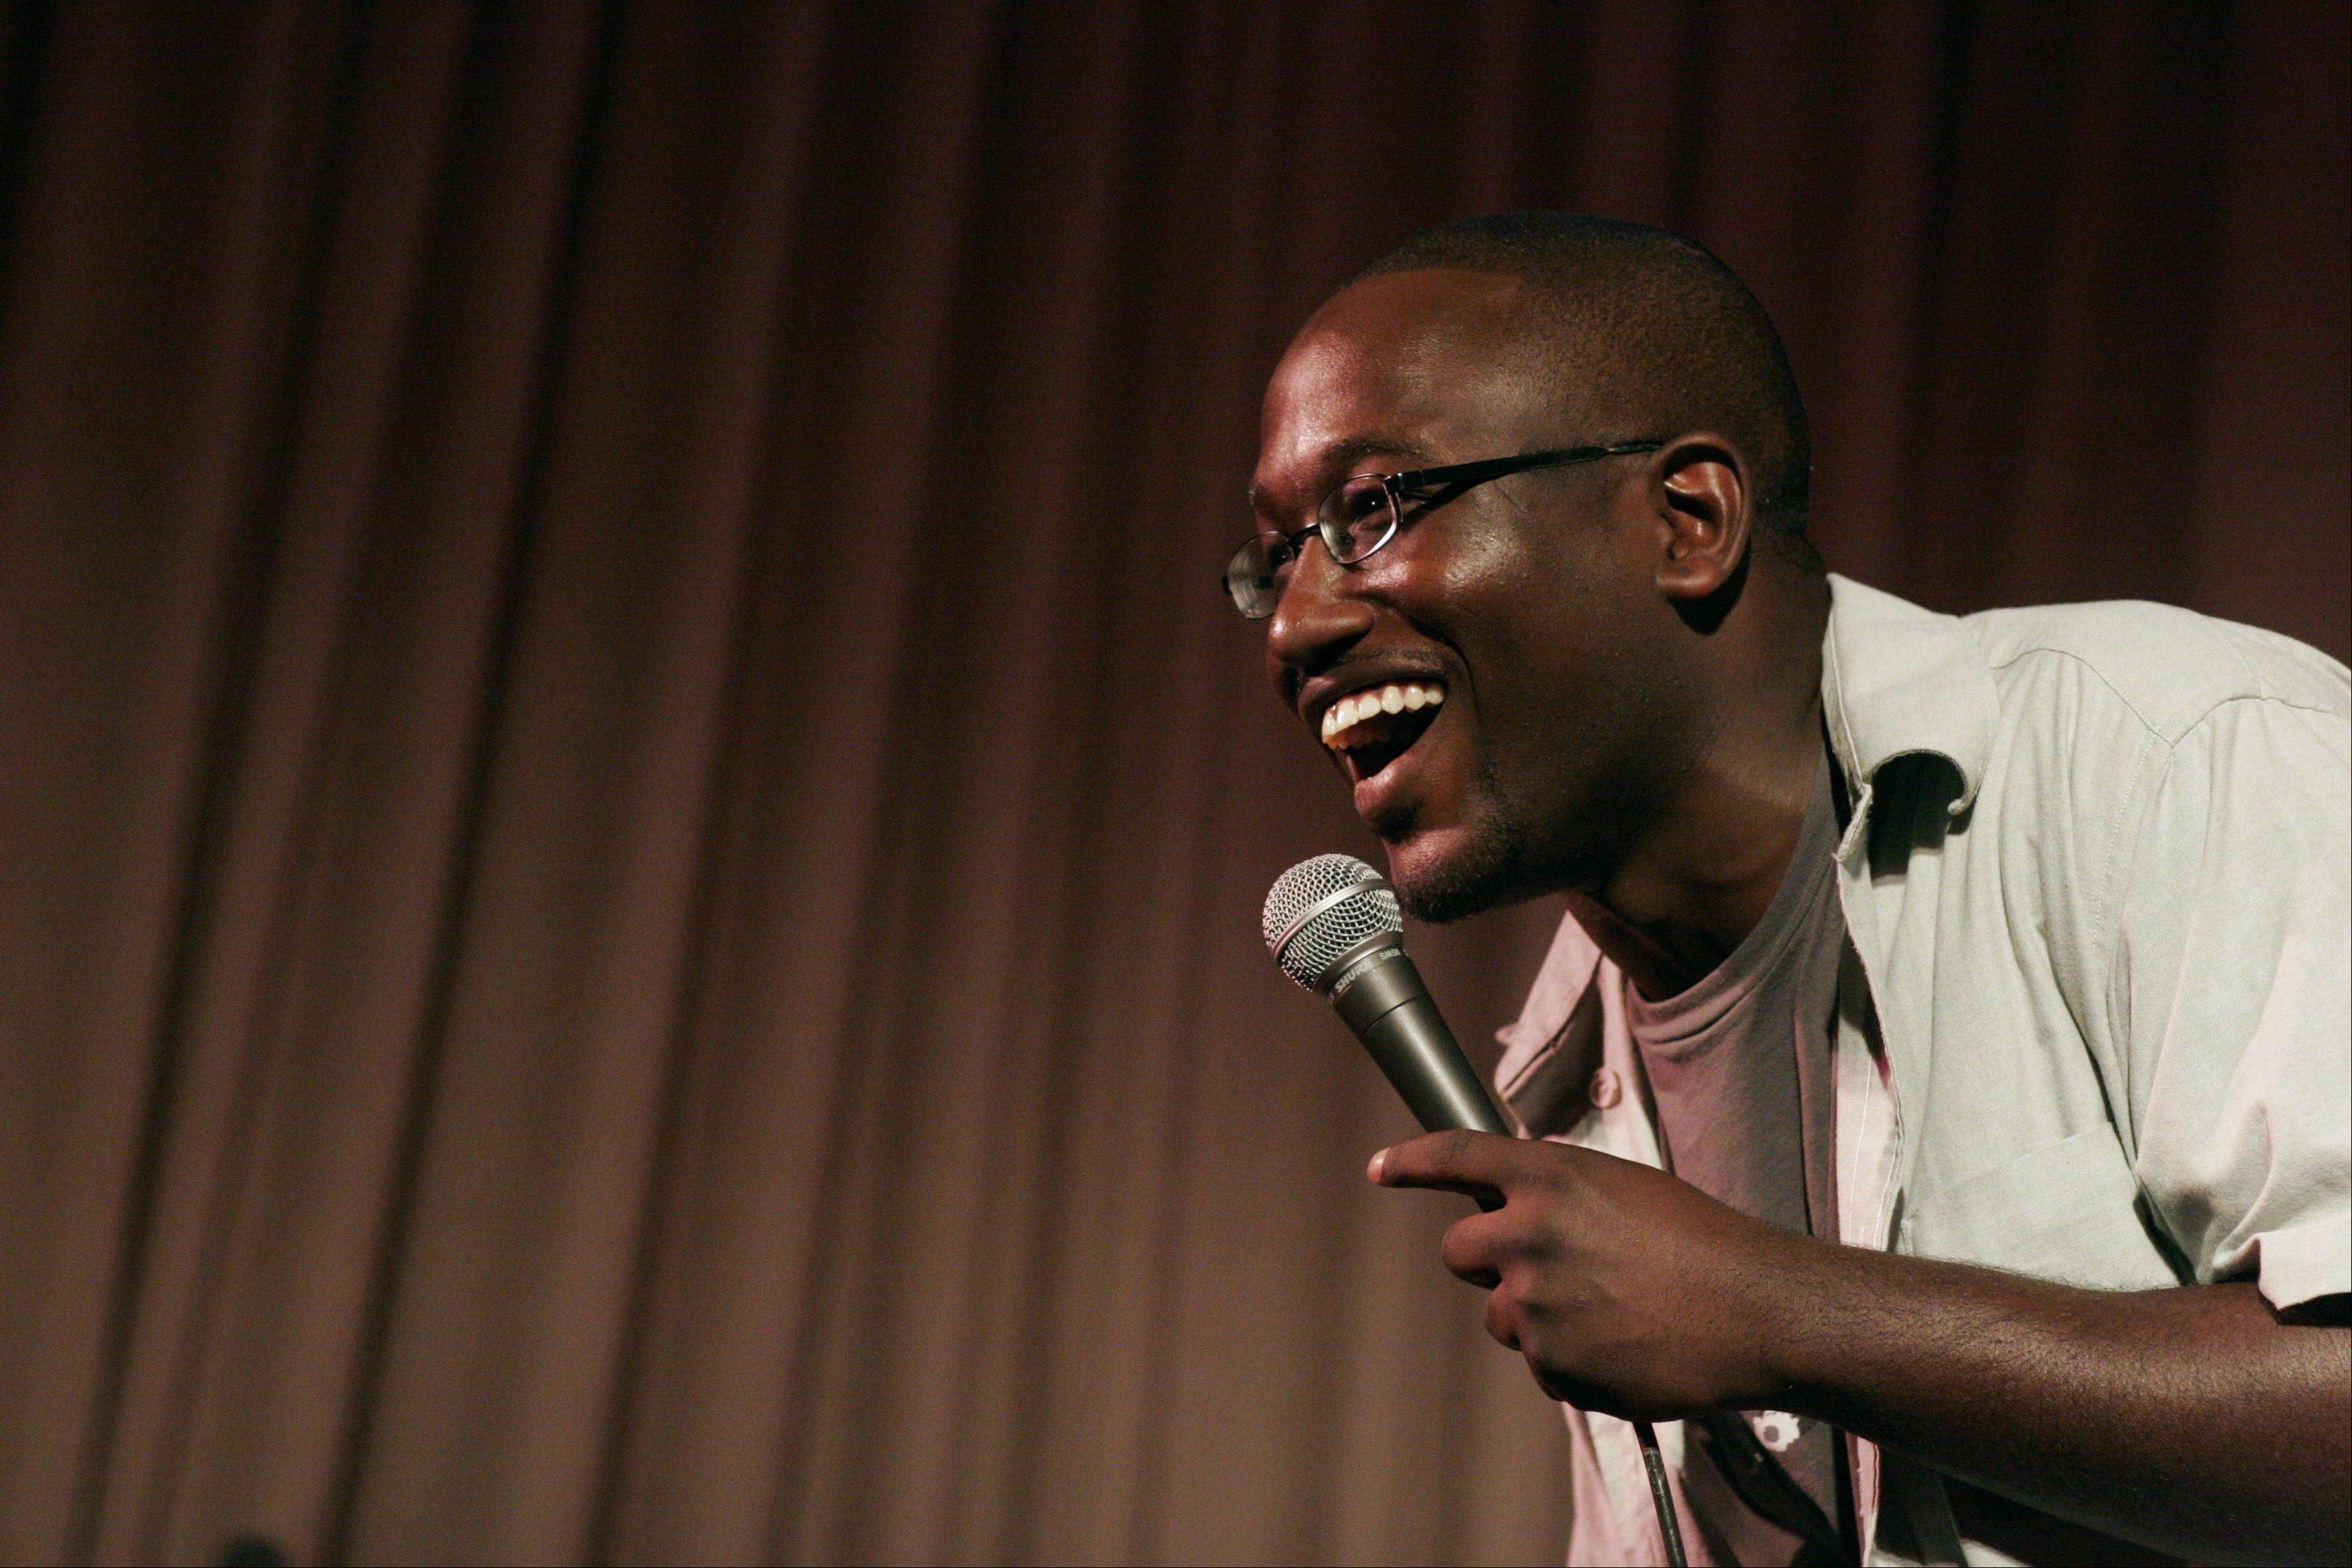 Comedian Hannibal Buress plays weekend engagements at Zanies locations in St. Charles, Rosemont and Chicago.